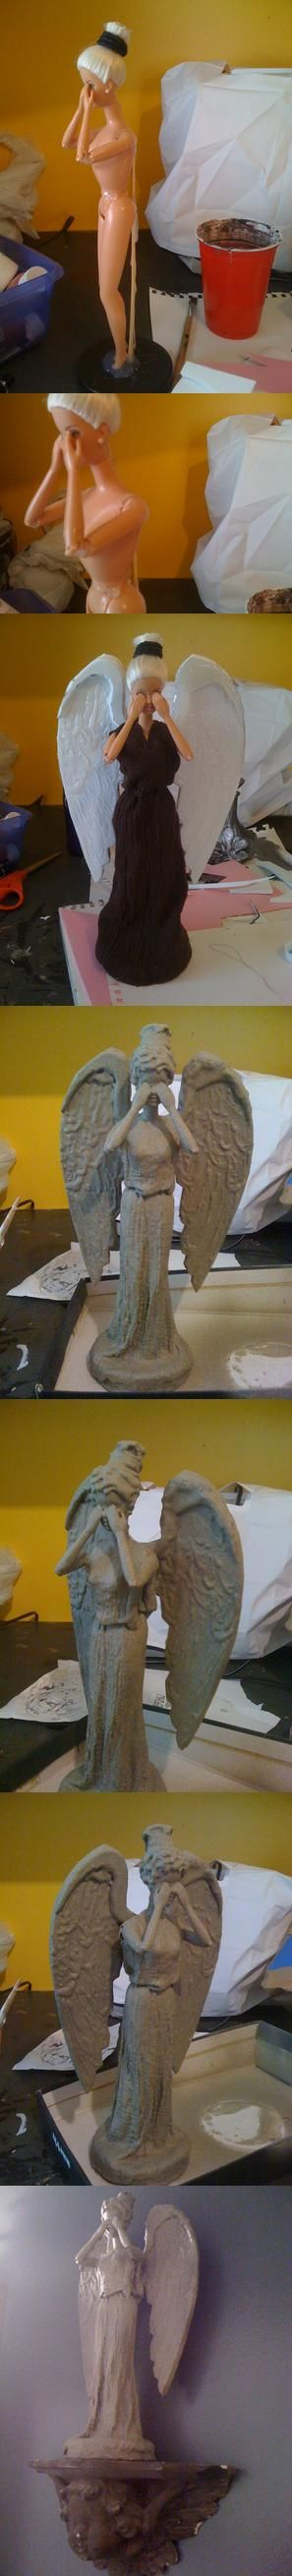 How to Make a Weeping Angel Barbie (link in comments) - Imgur